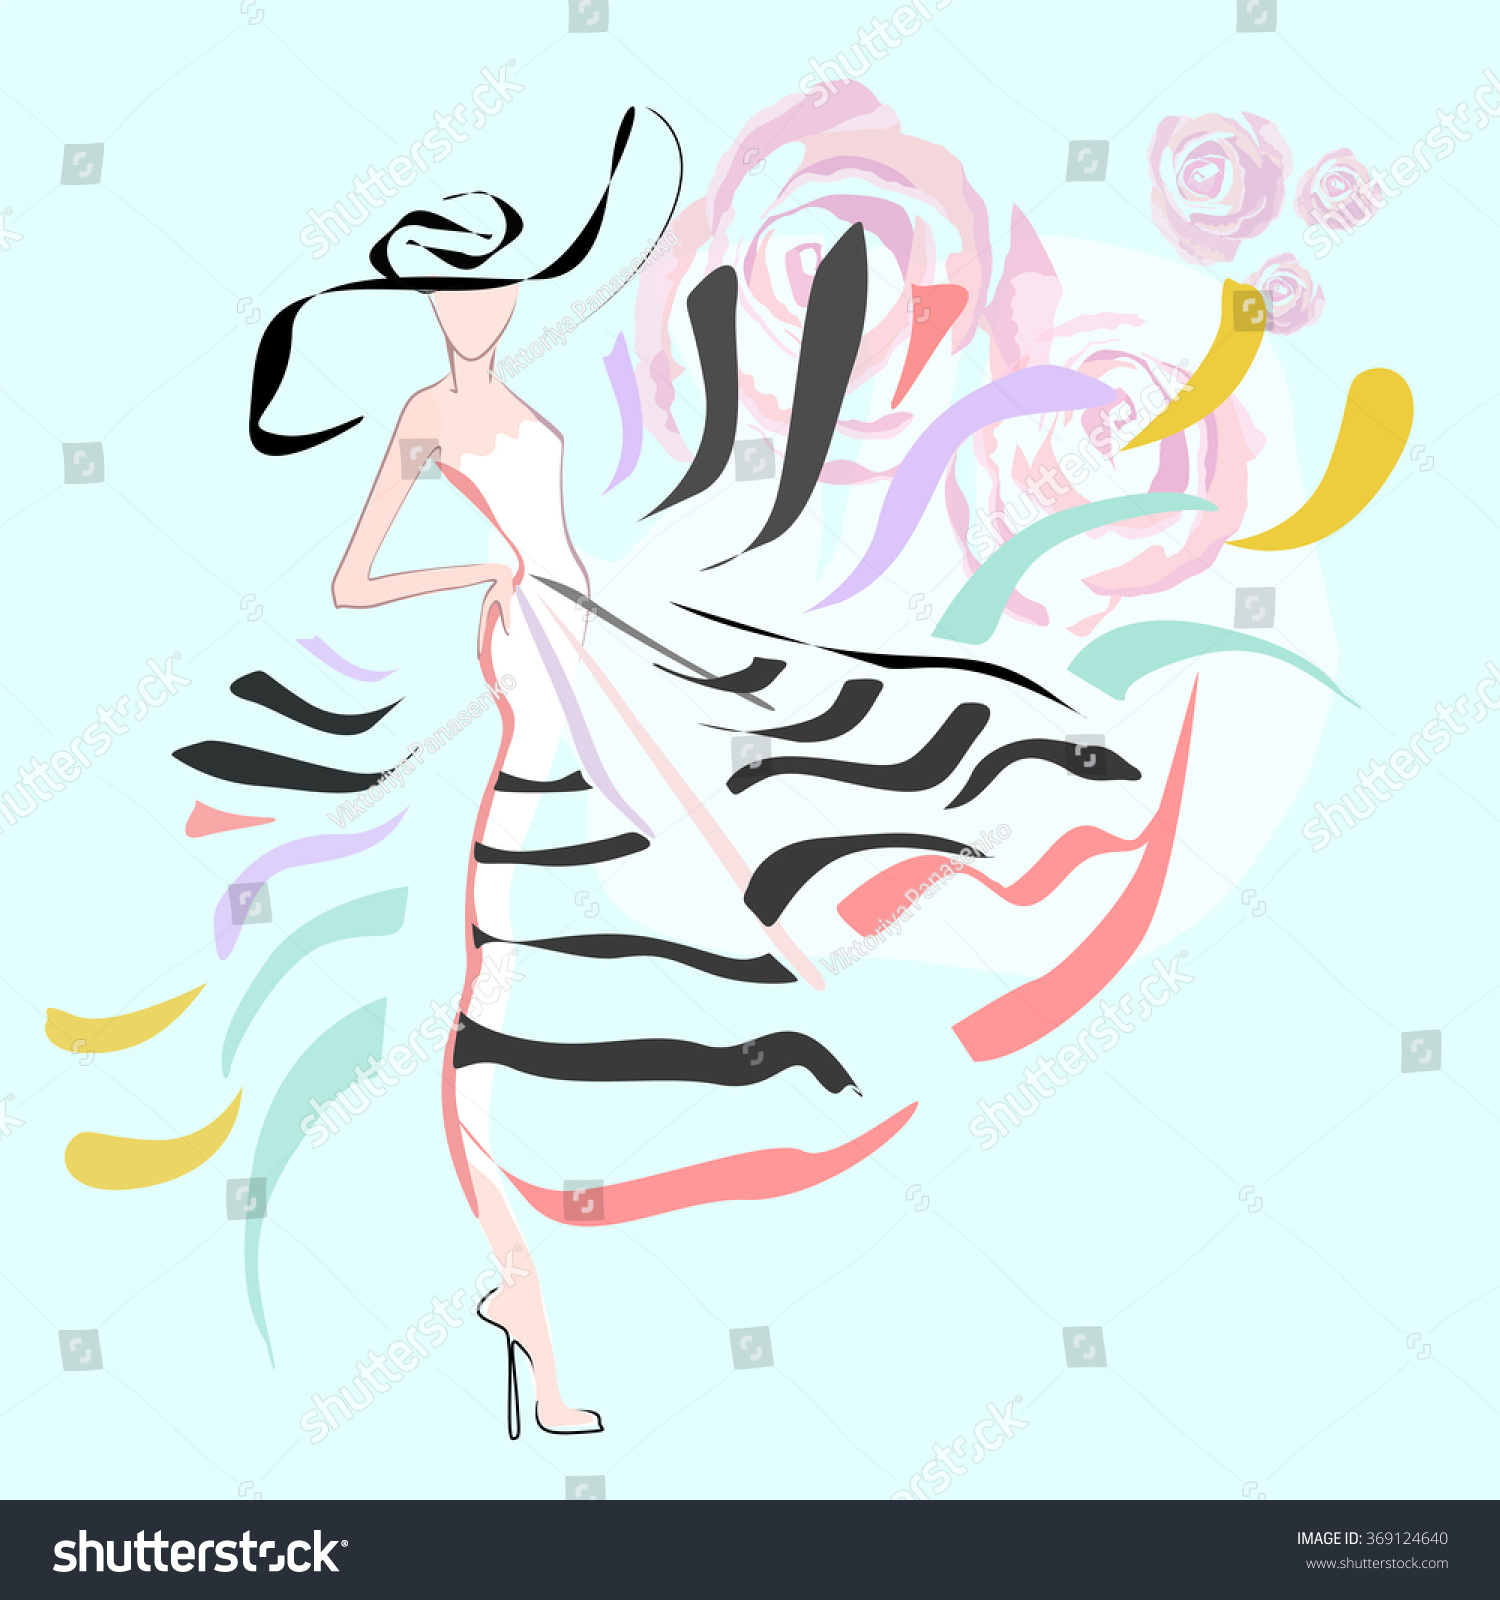 Abstract Sketch Of A Model (Girl) In A Striped Dress And A Hat Decorated With Roses Fashion ...